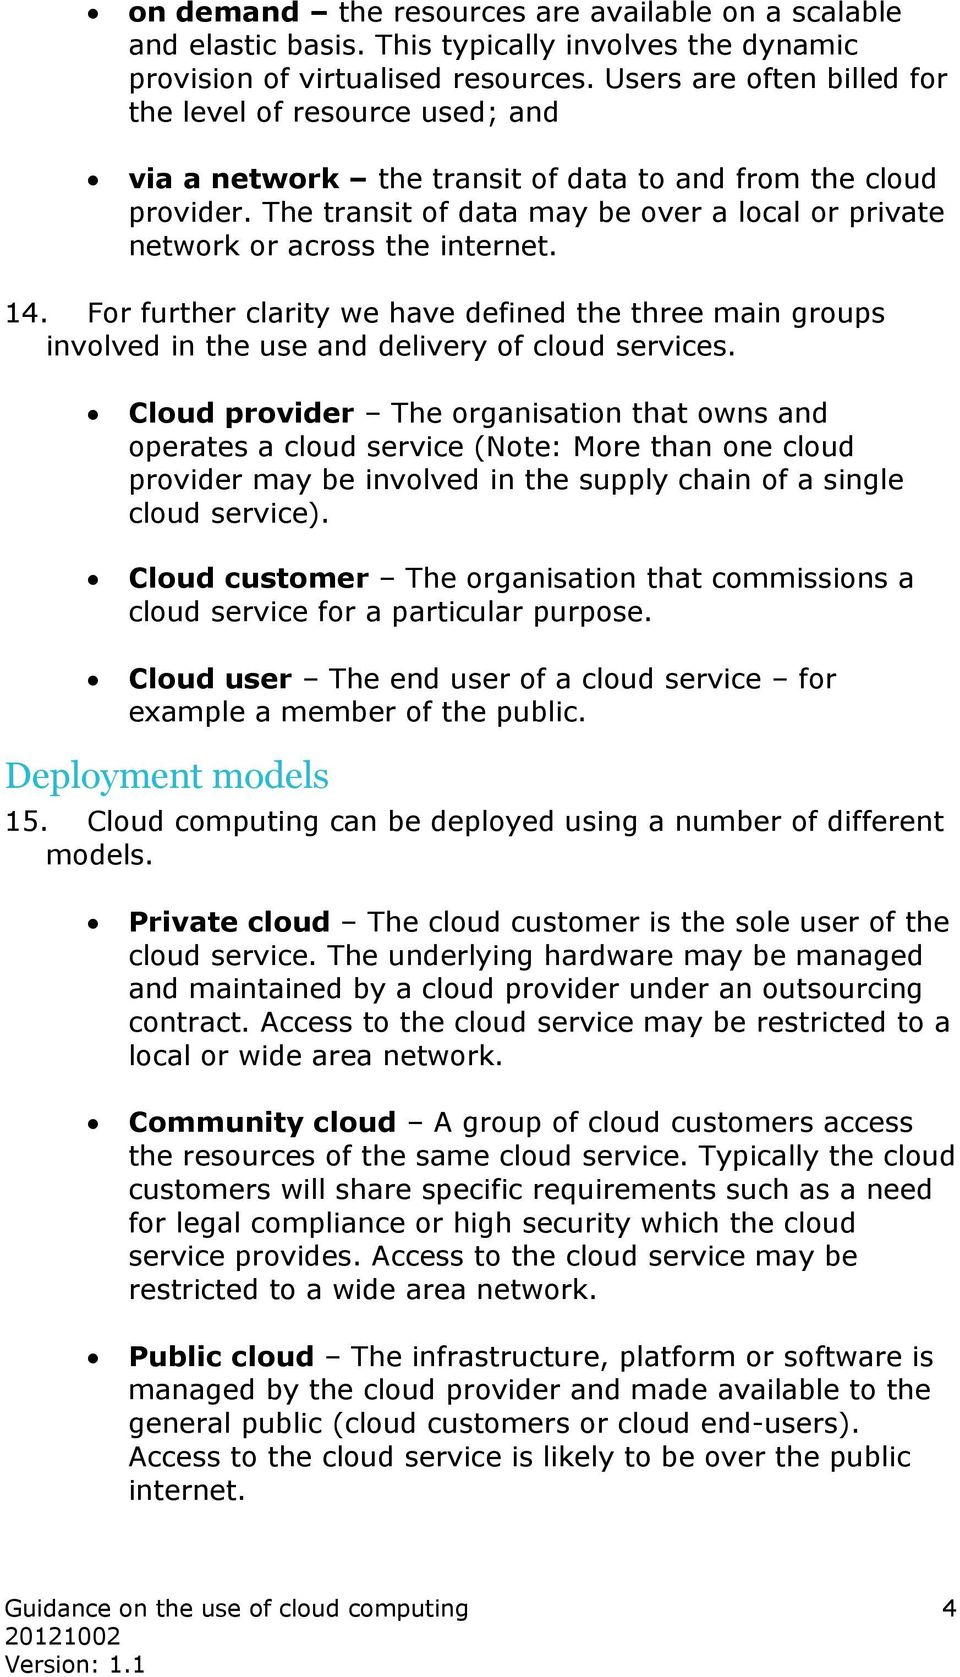 The transit of data may be over a local or private network or across the internet. 14. For further clarity we have defined the three main groups involved in the use and delivery of cloud services.